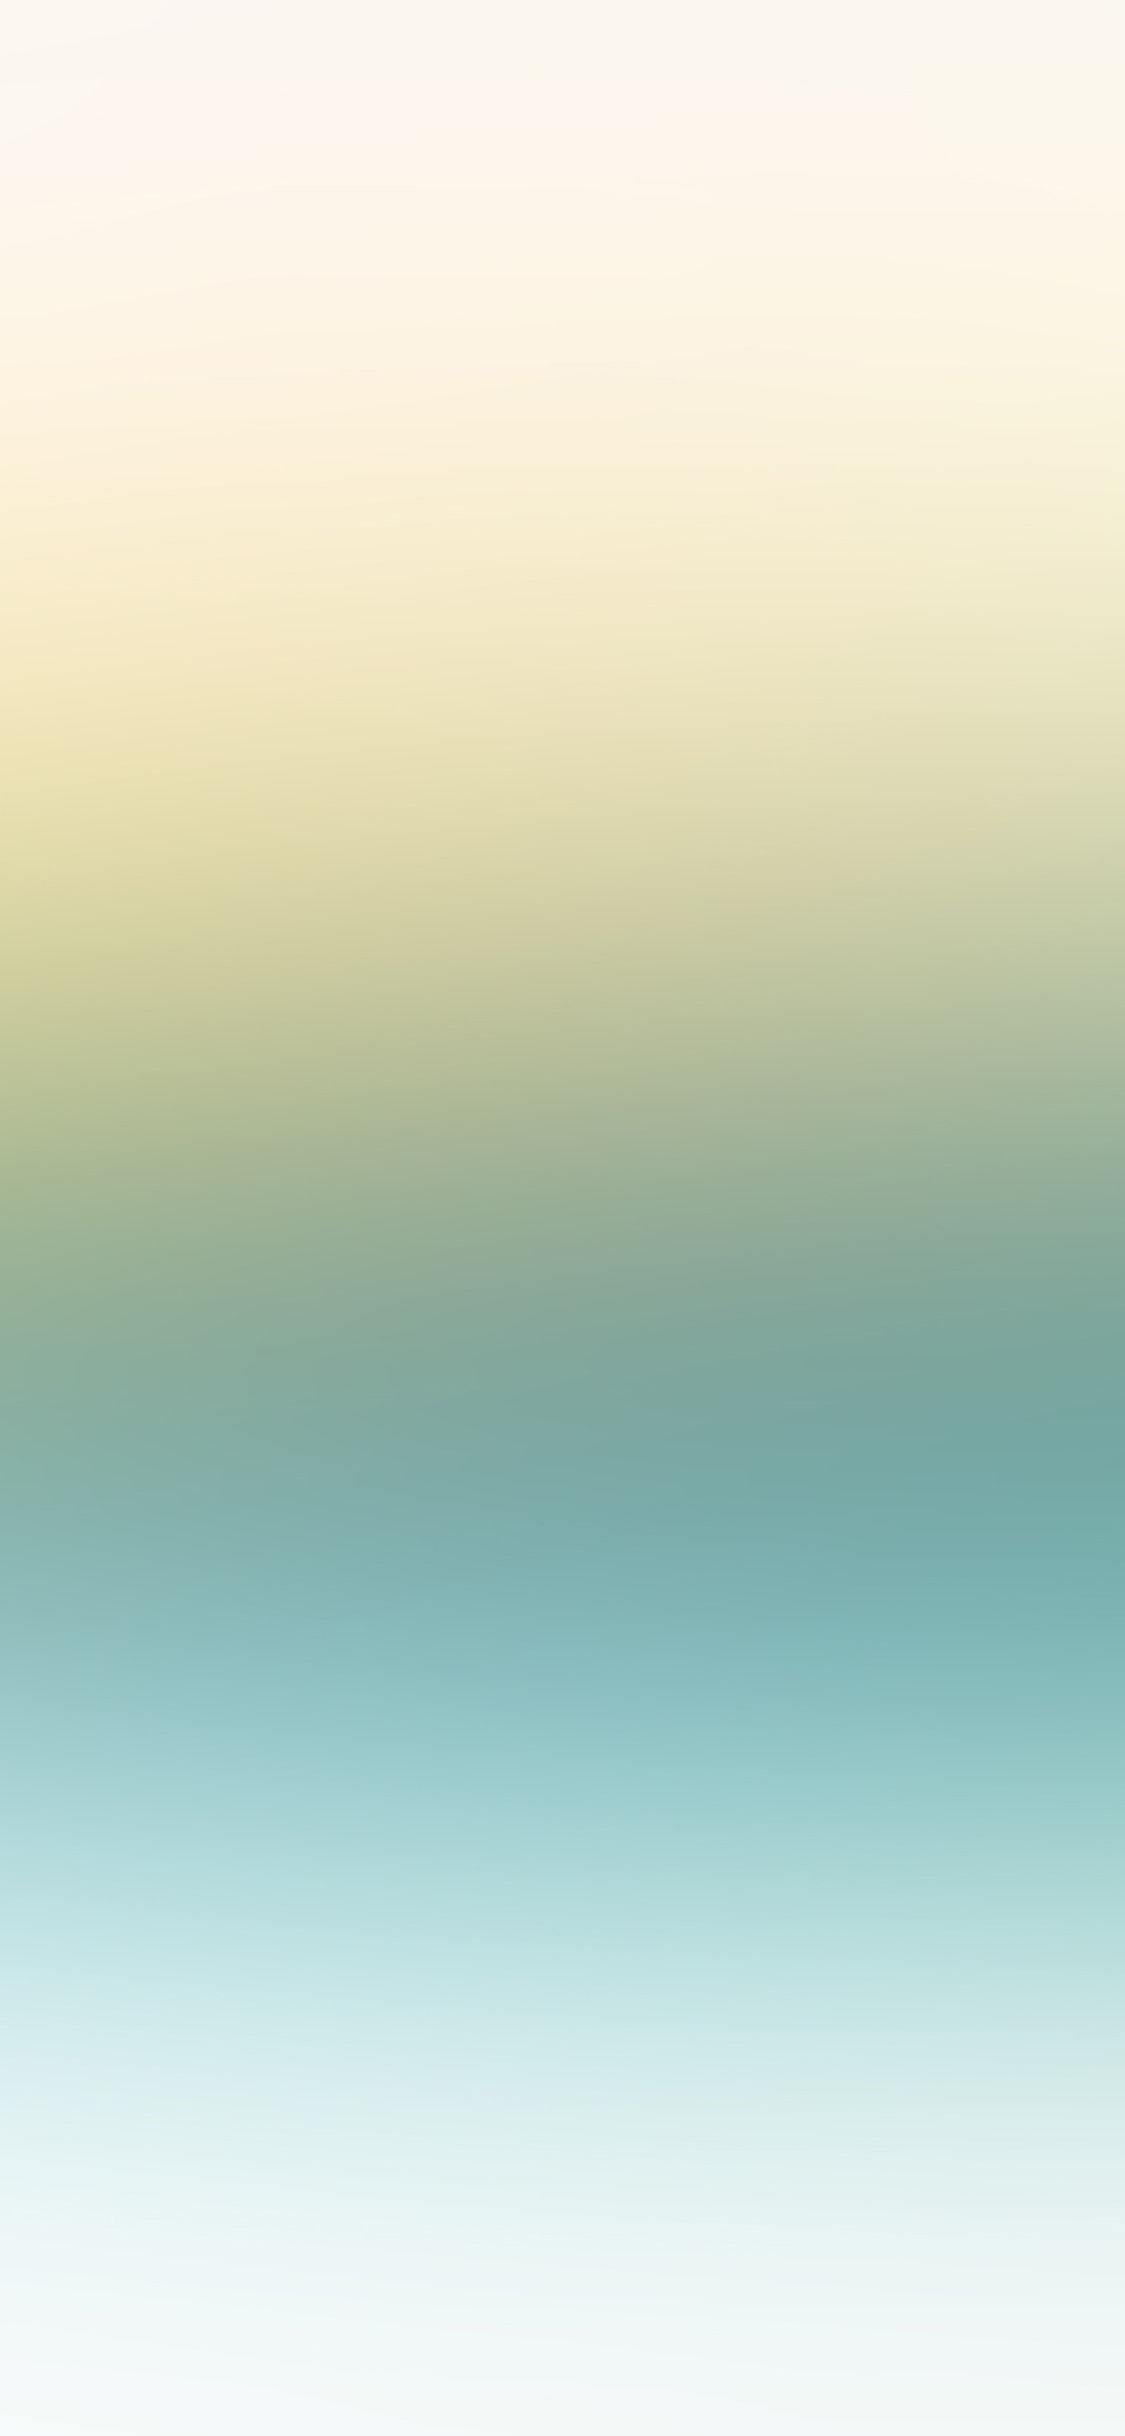 iPhoneXpapers.com-Apple-iPhone-wallpaper-sj20-green-yellow-spring-soft-pastel-gradation-blur